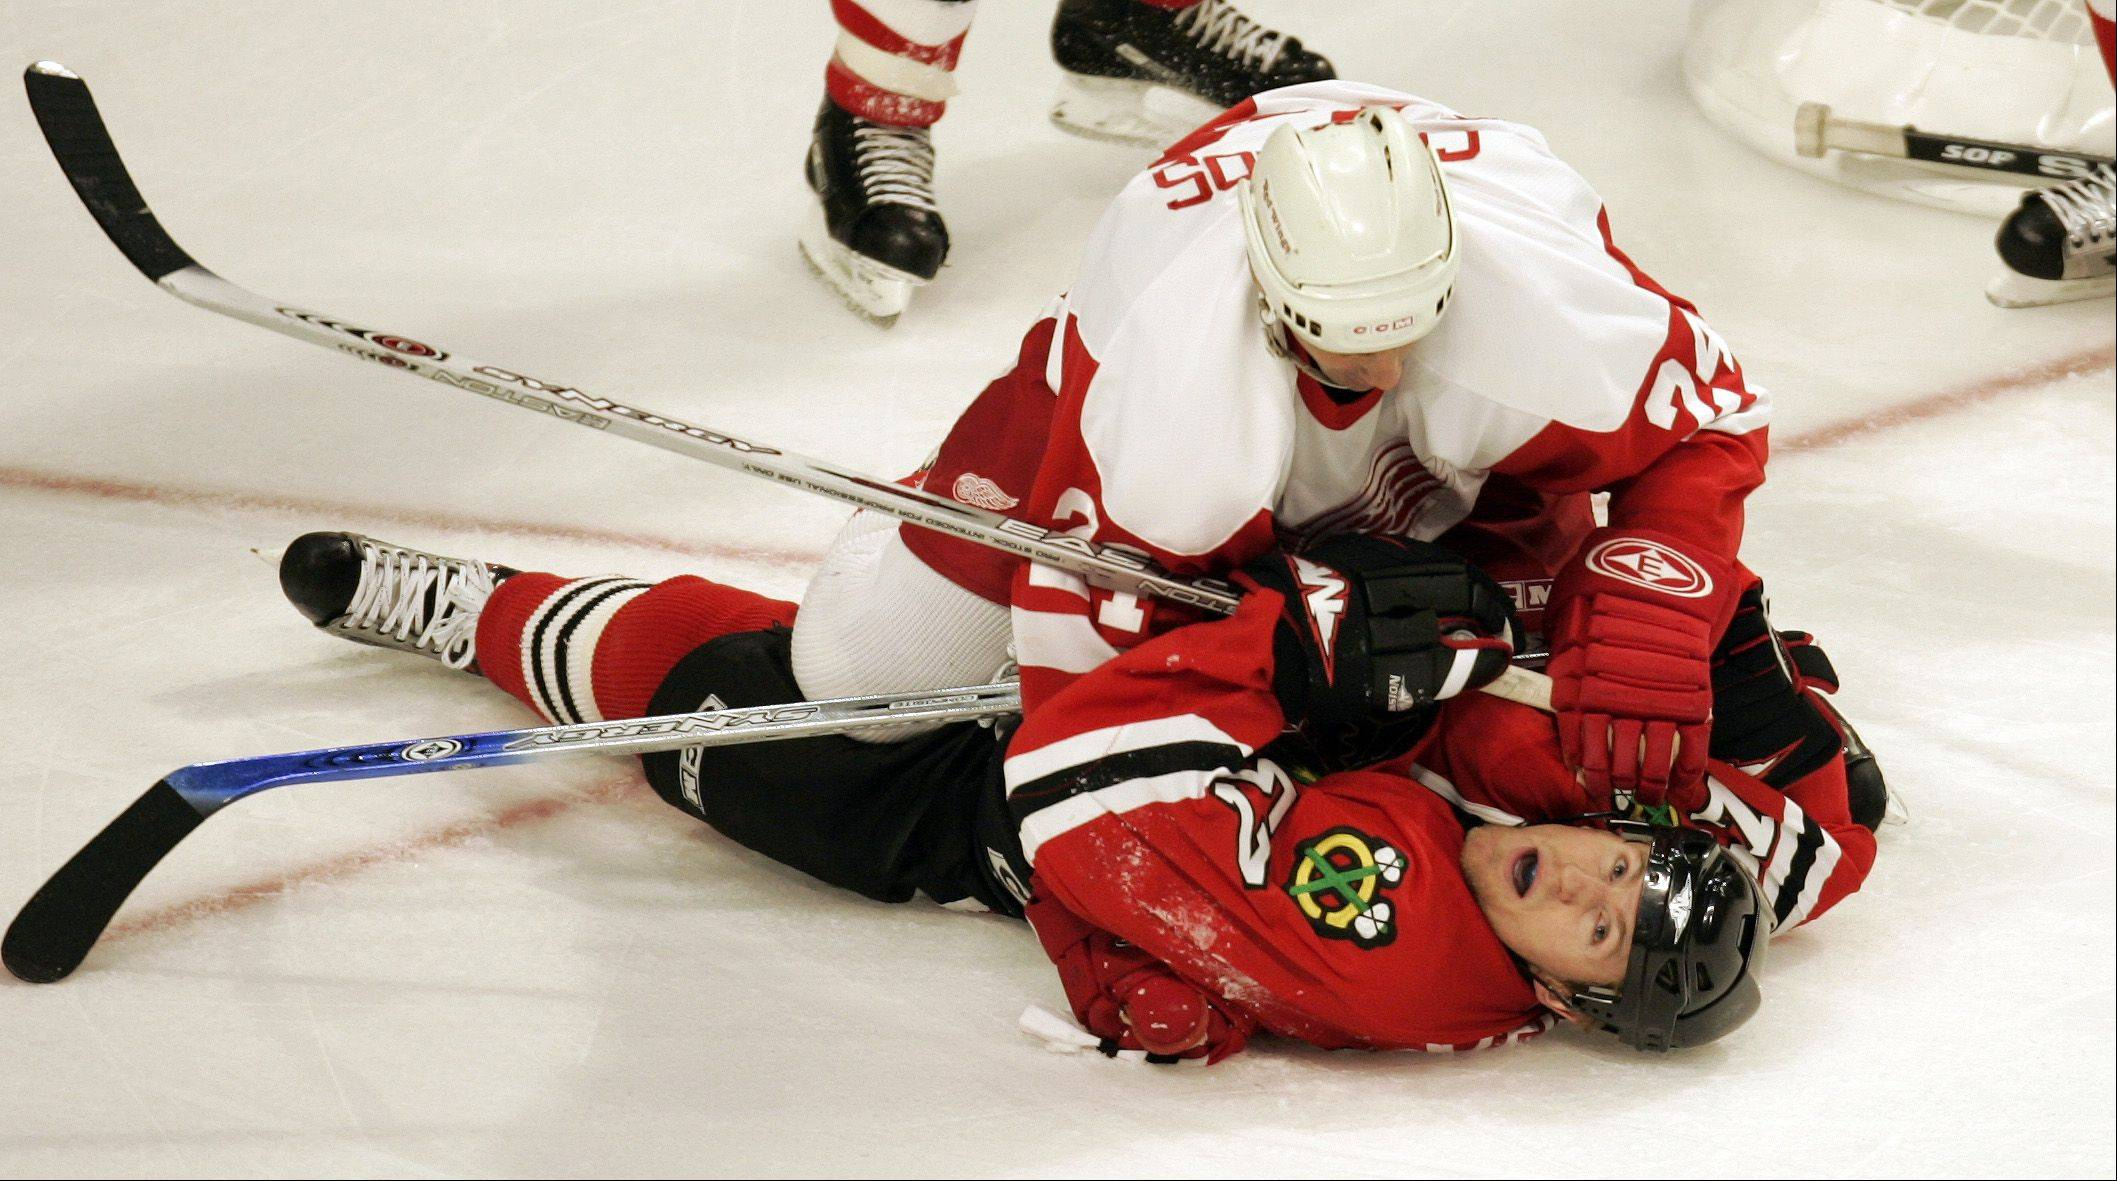 Redwings Chris Chelios pins Hawks Karl Stewart to the ice as he gets checked near the goal in 3rd period in a game against the Chicago Blackhawks at the United Center.